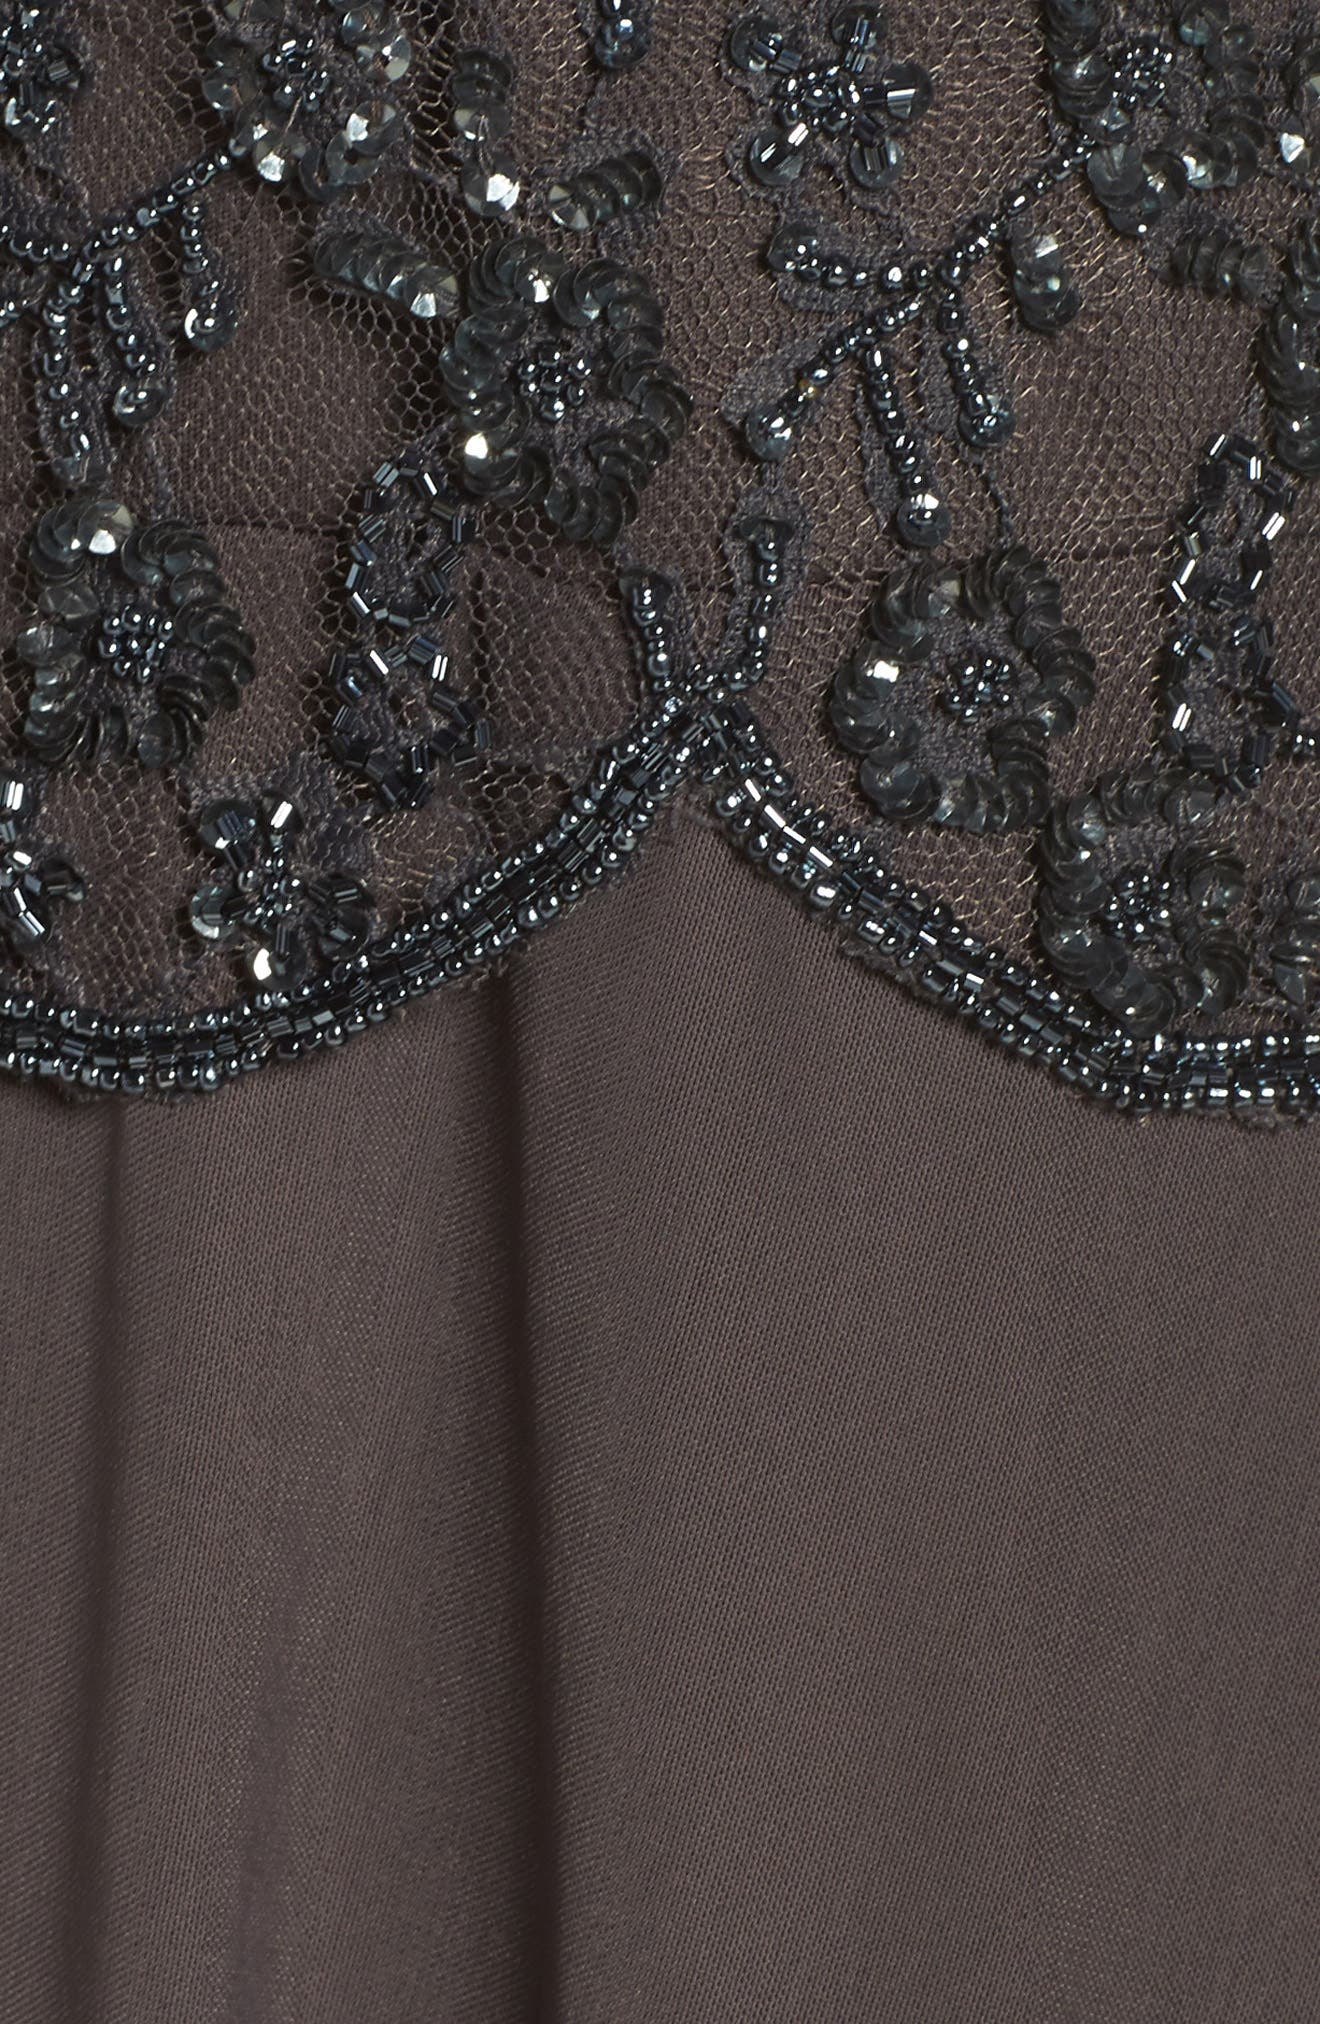 Embellished Mesh Gown,                             Alternate thumbnail 6, color,                             020